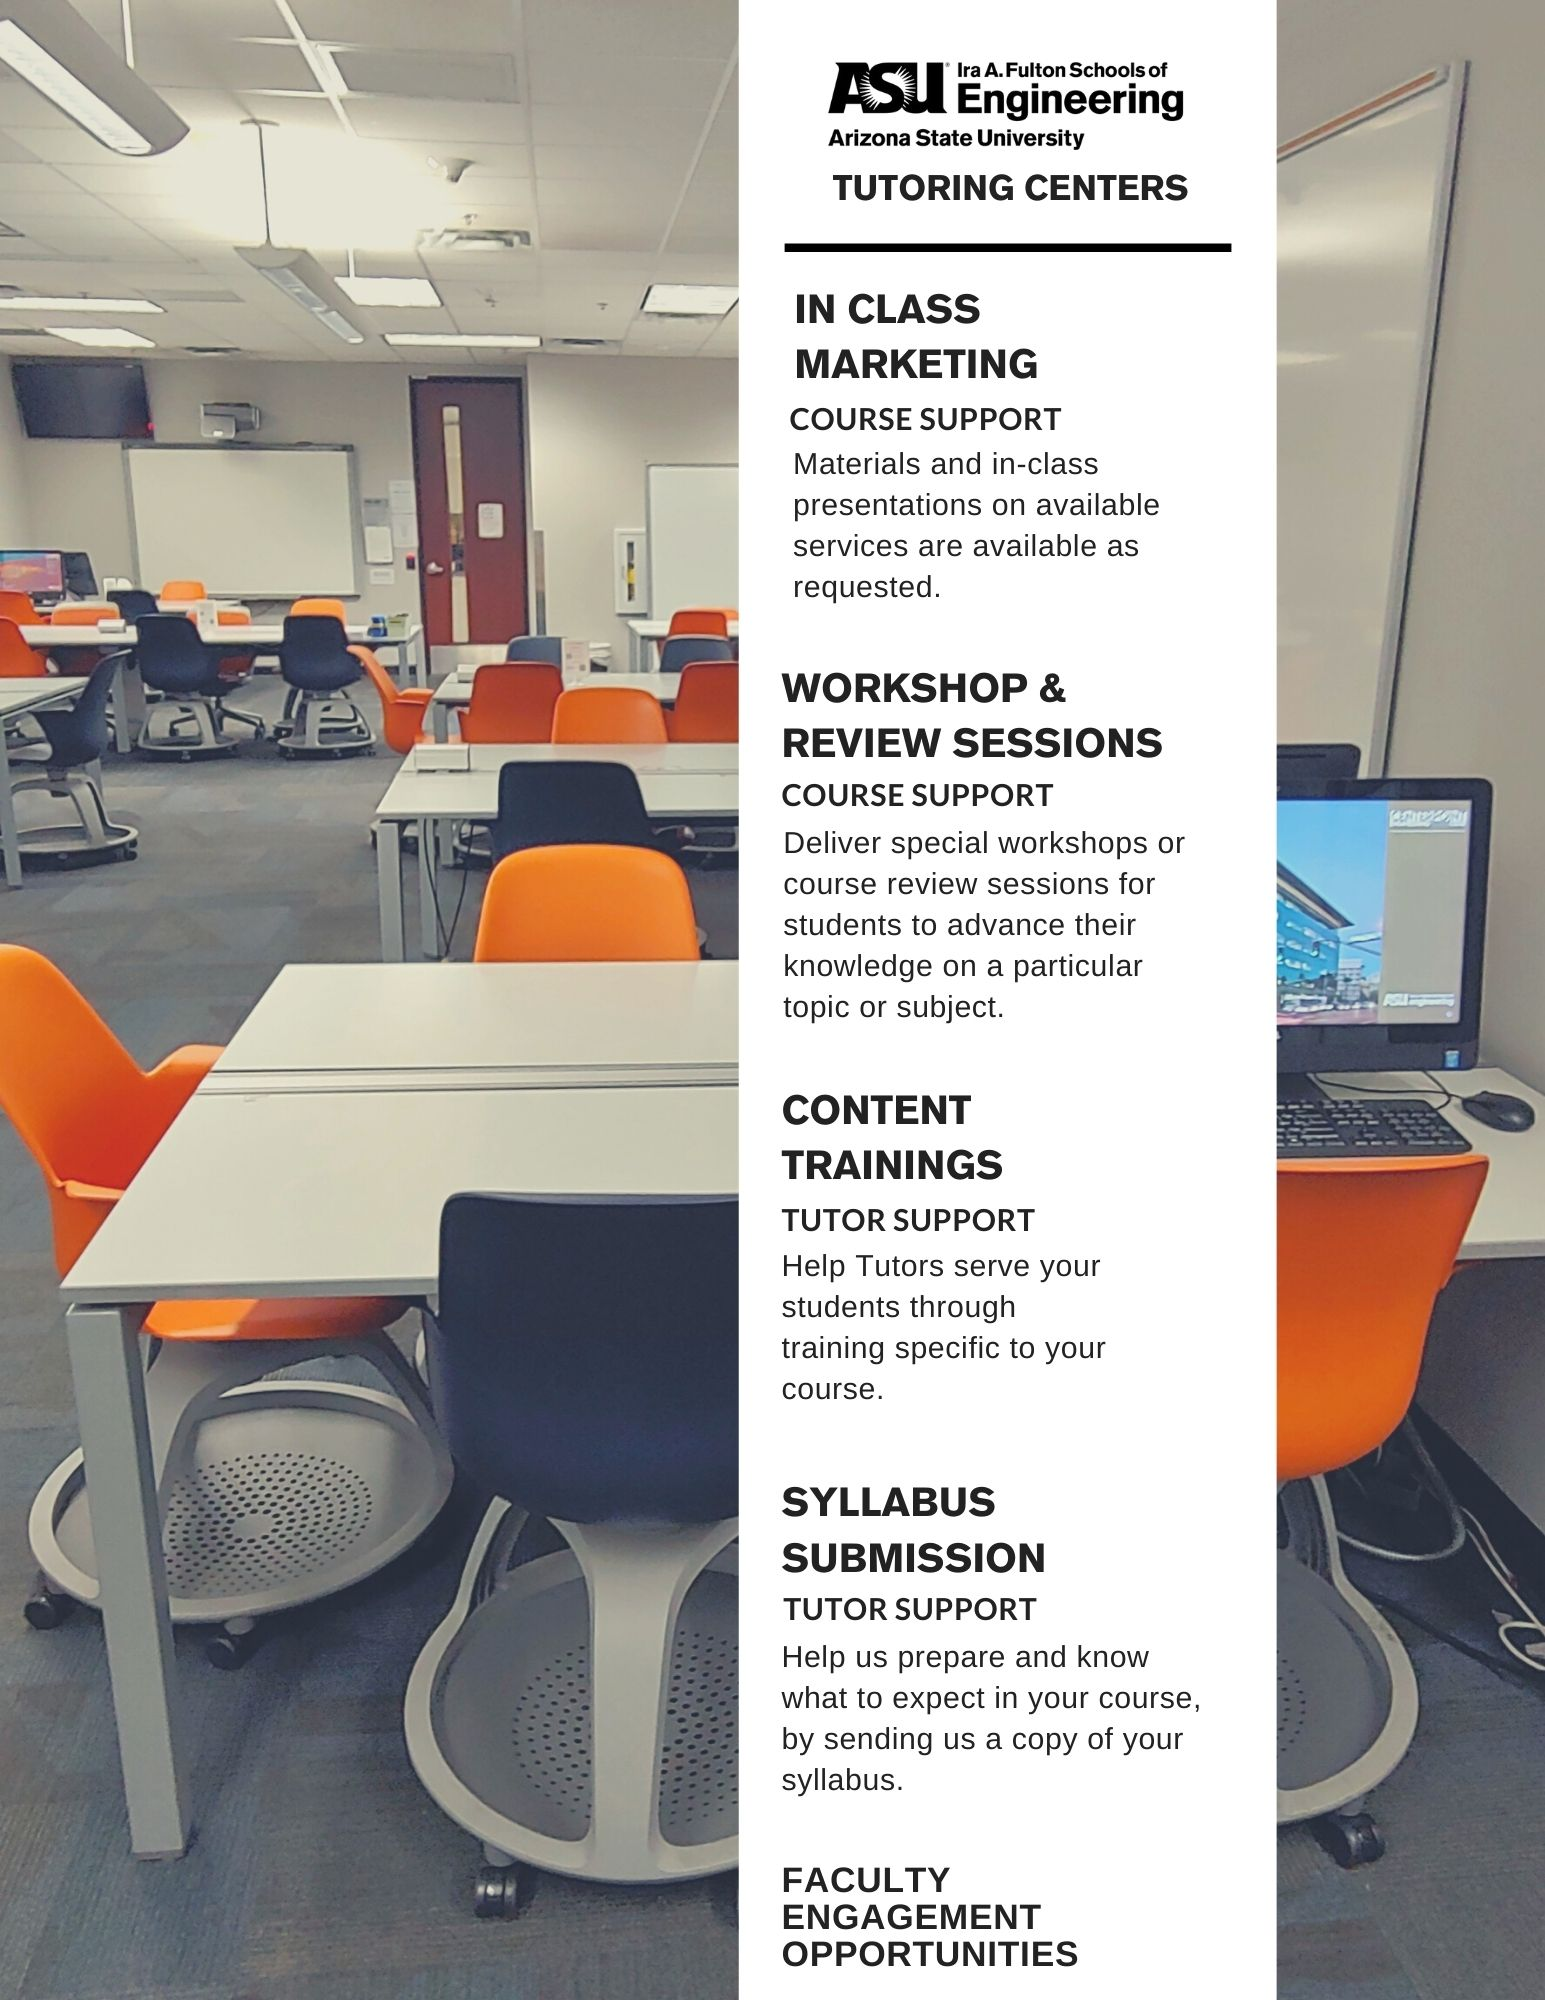 Tutoring Centers Faculty Opportunities